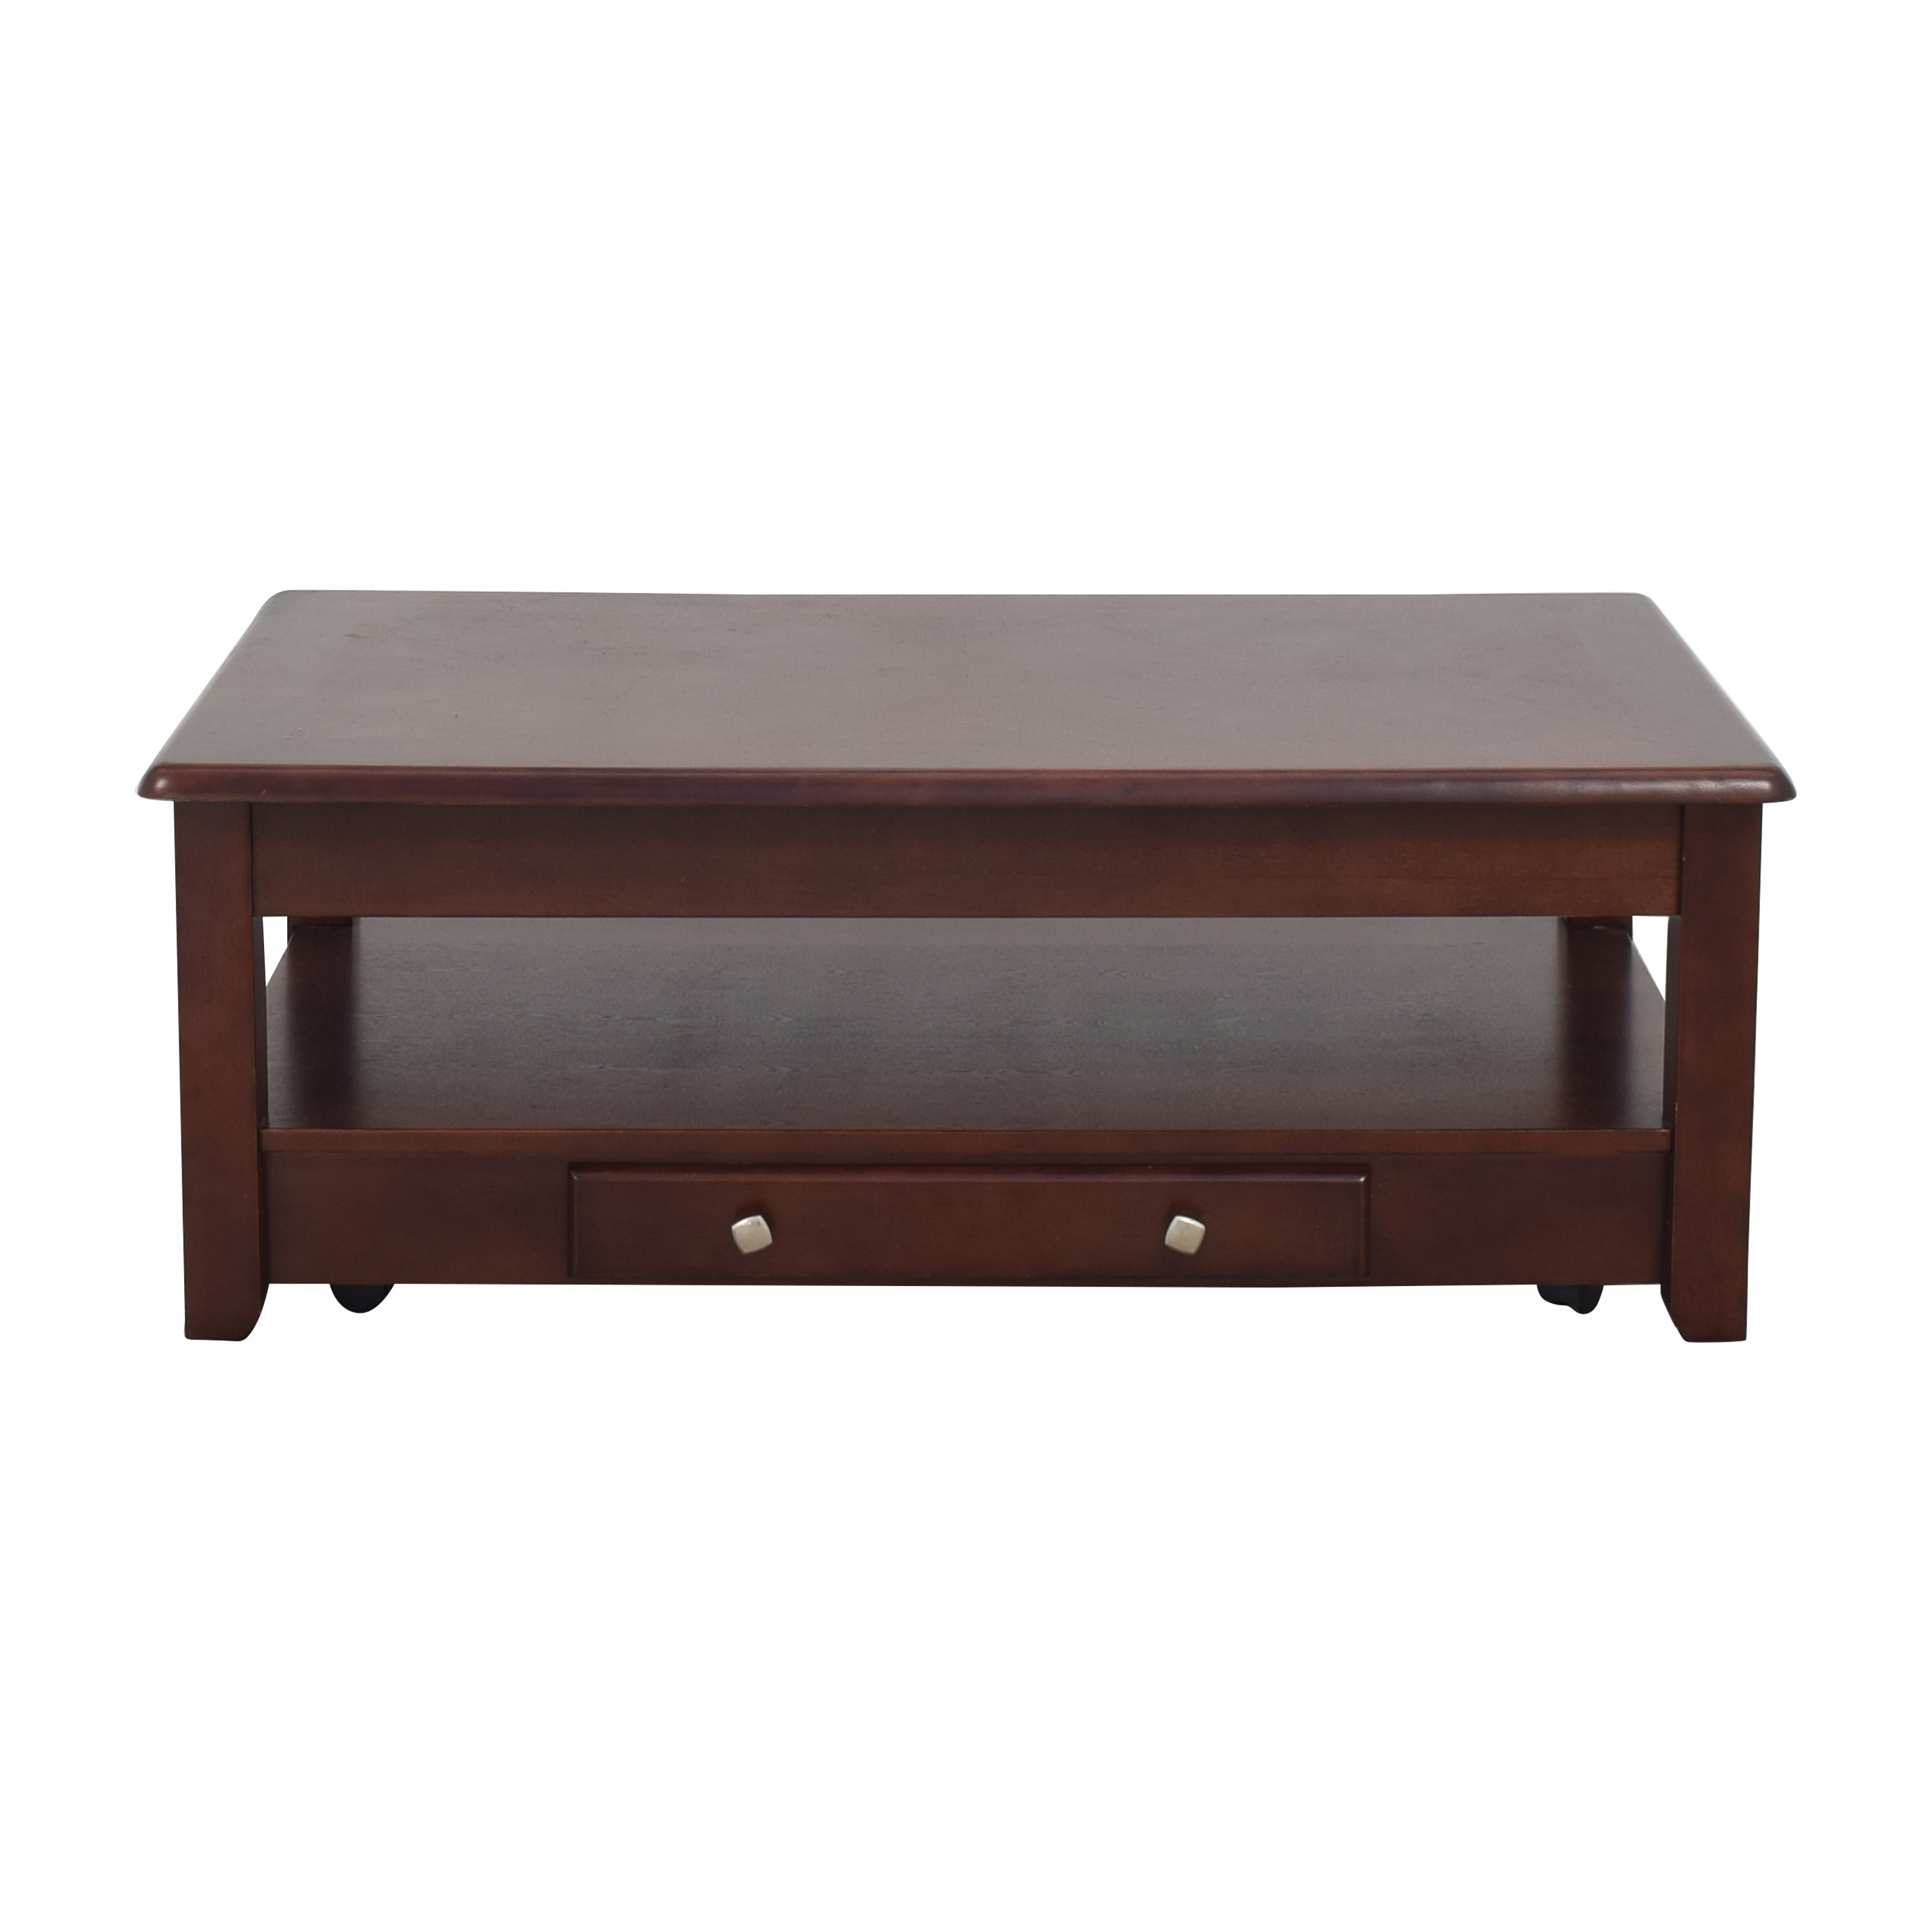 Raymour & Flanigan Storage Coffee Table / Tables